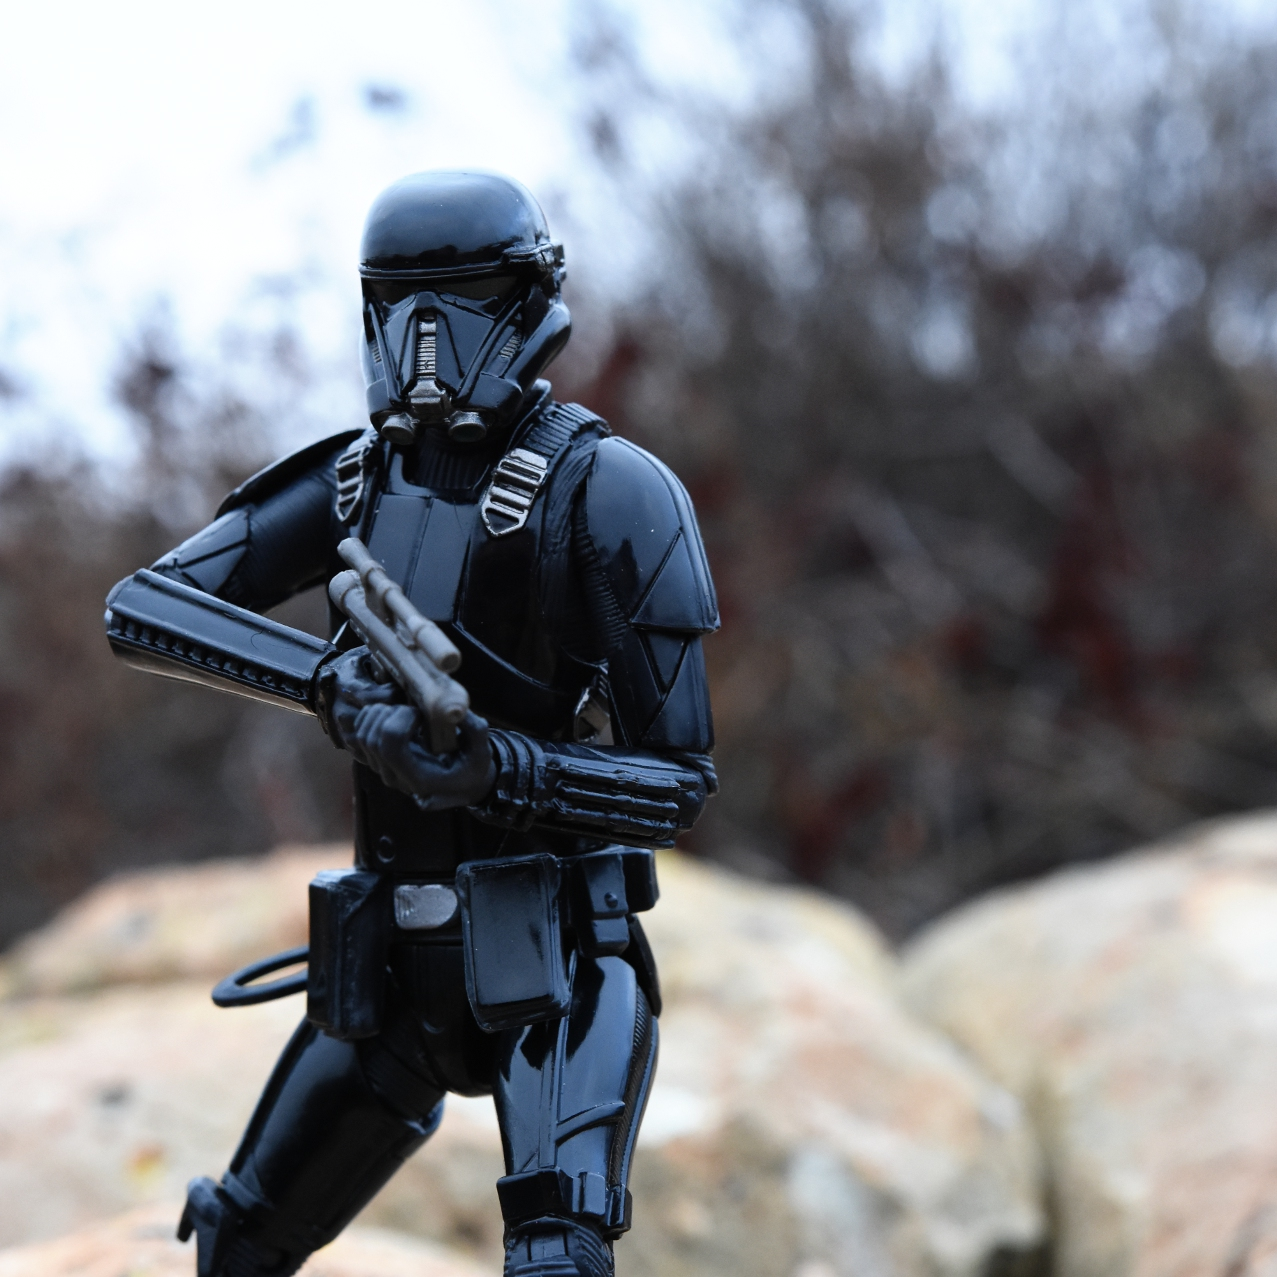 death troopers Read and download death troopers star wars joe schreiber free ebooks in pdf format - the roar behind the silence why kindness compassion and respect matter in.